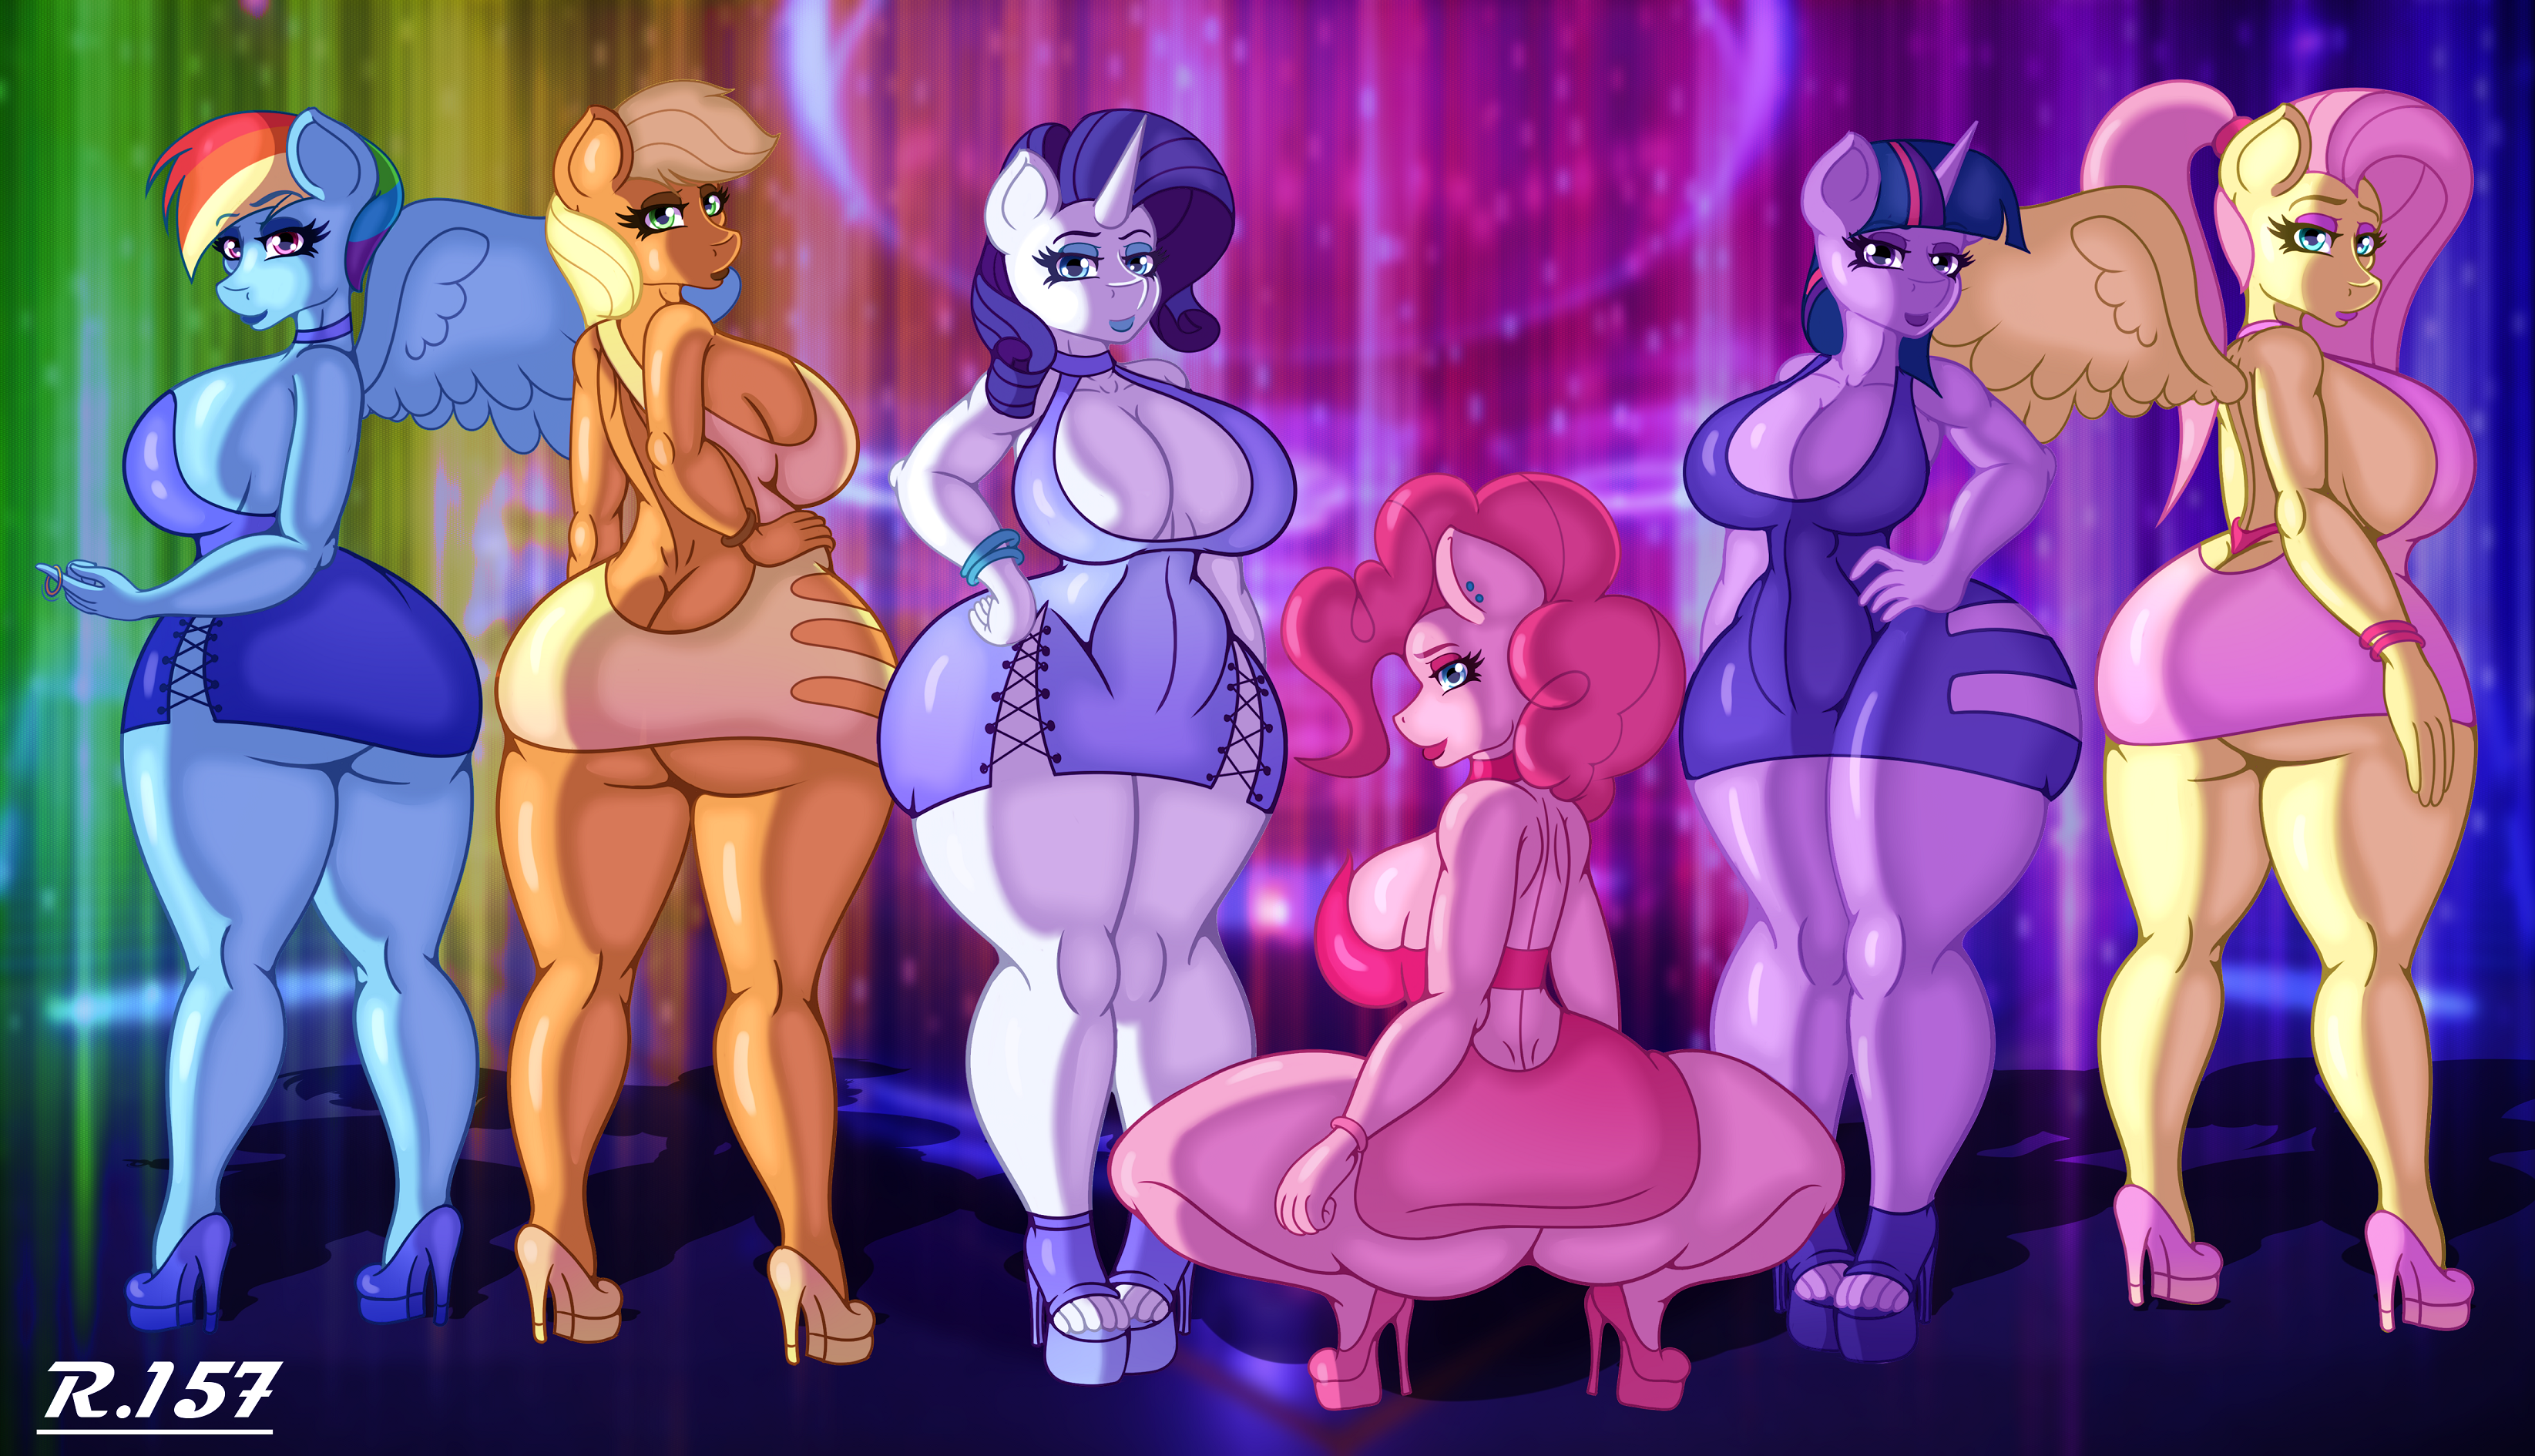 [Commission] Girls Night Out